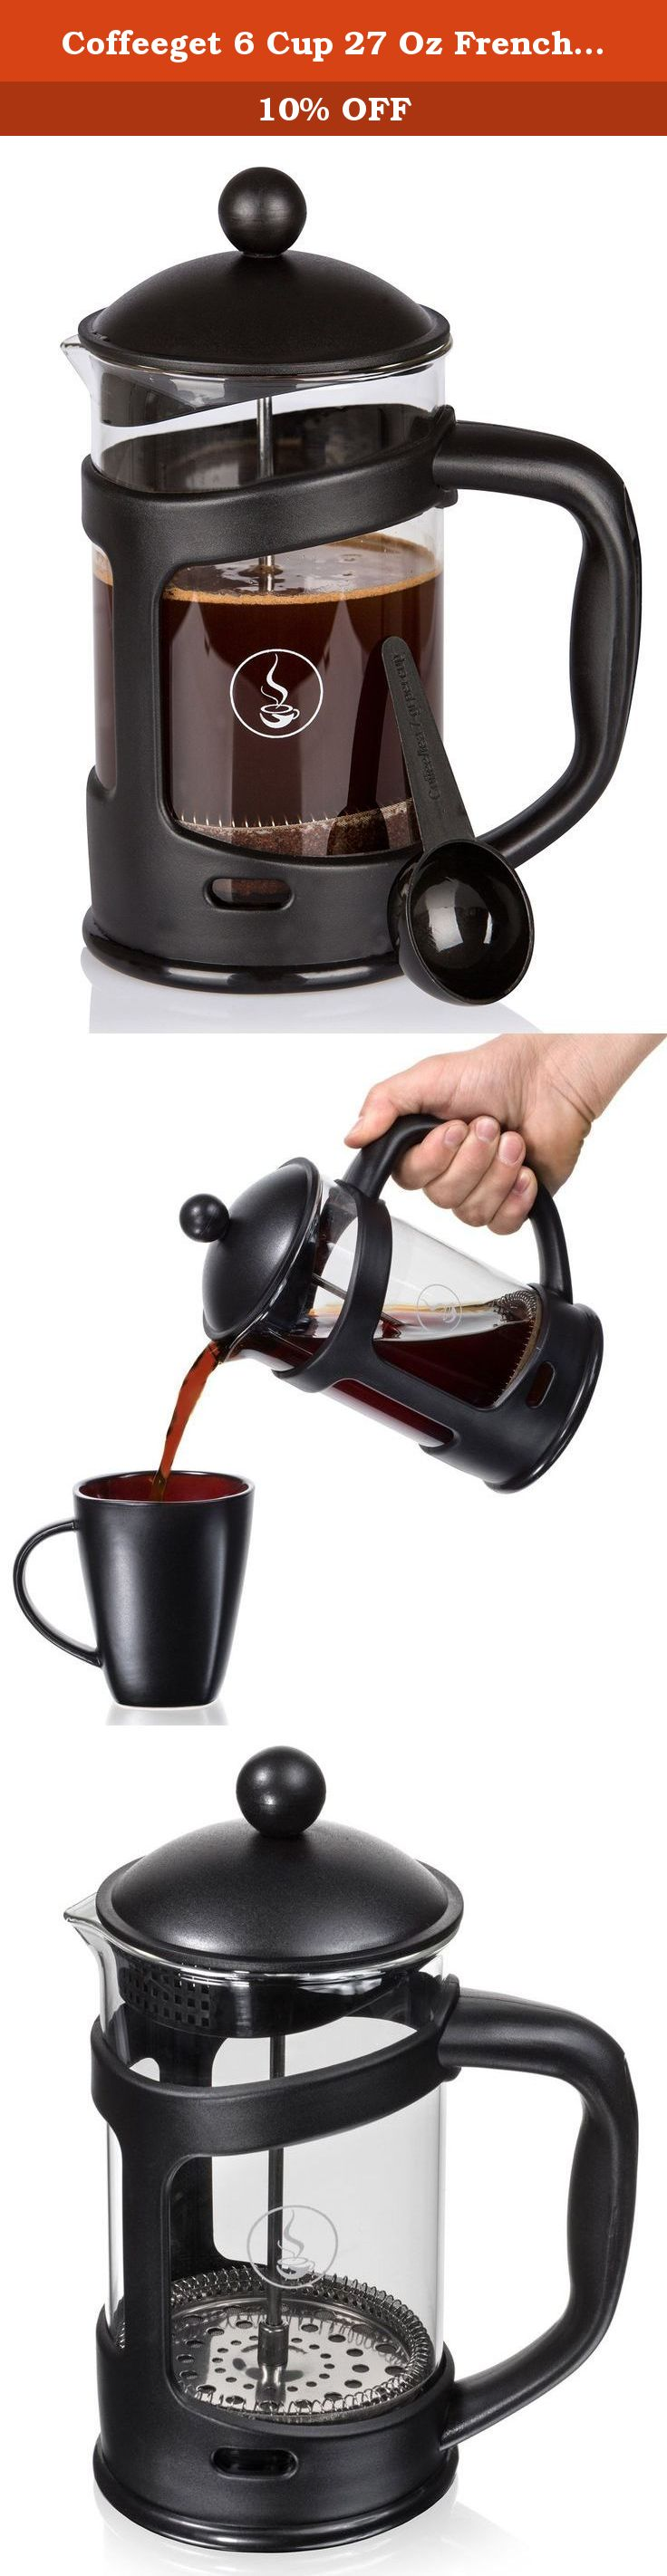 Coffeeget 6 Cup 27 Oz French Press Coffee Maker with Thick